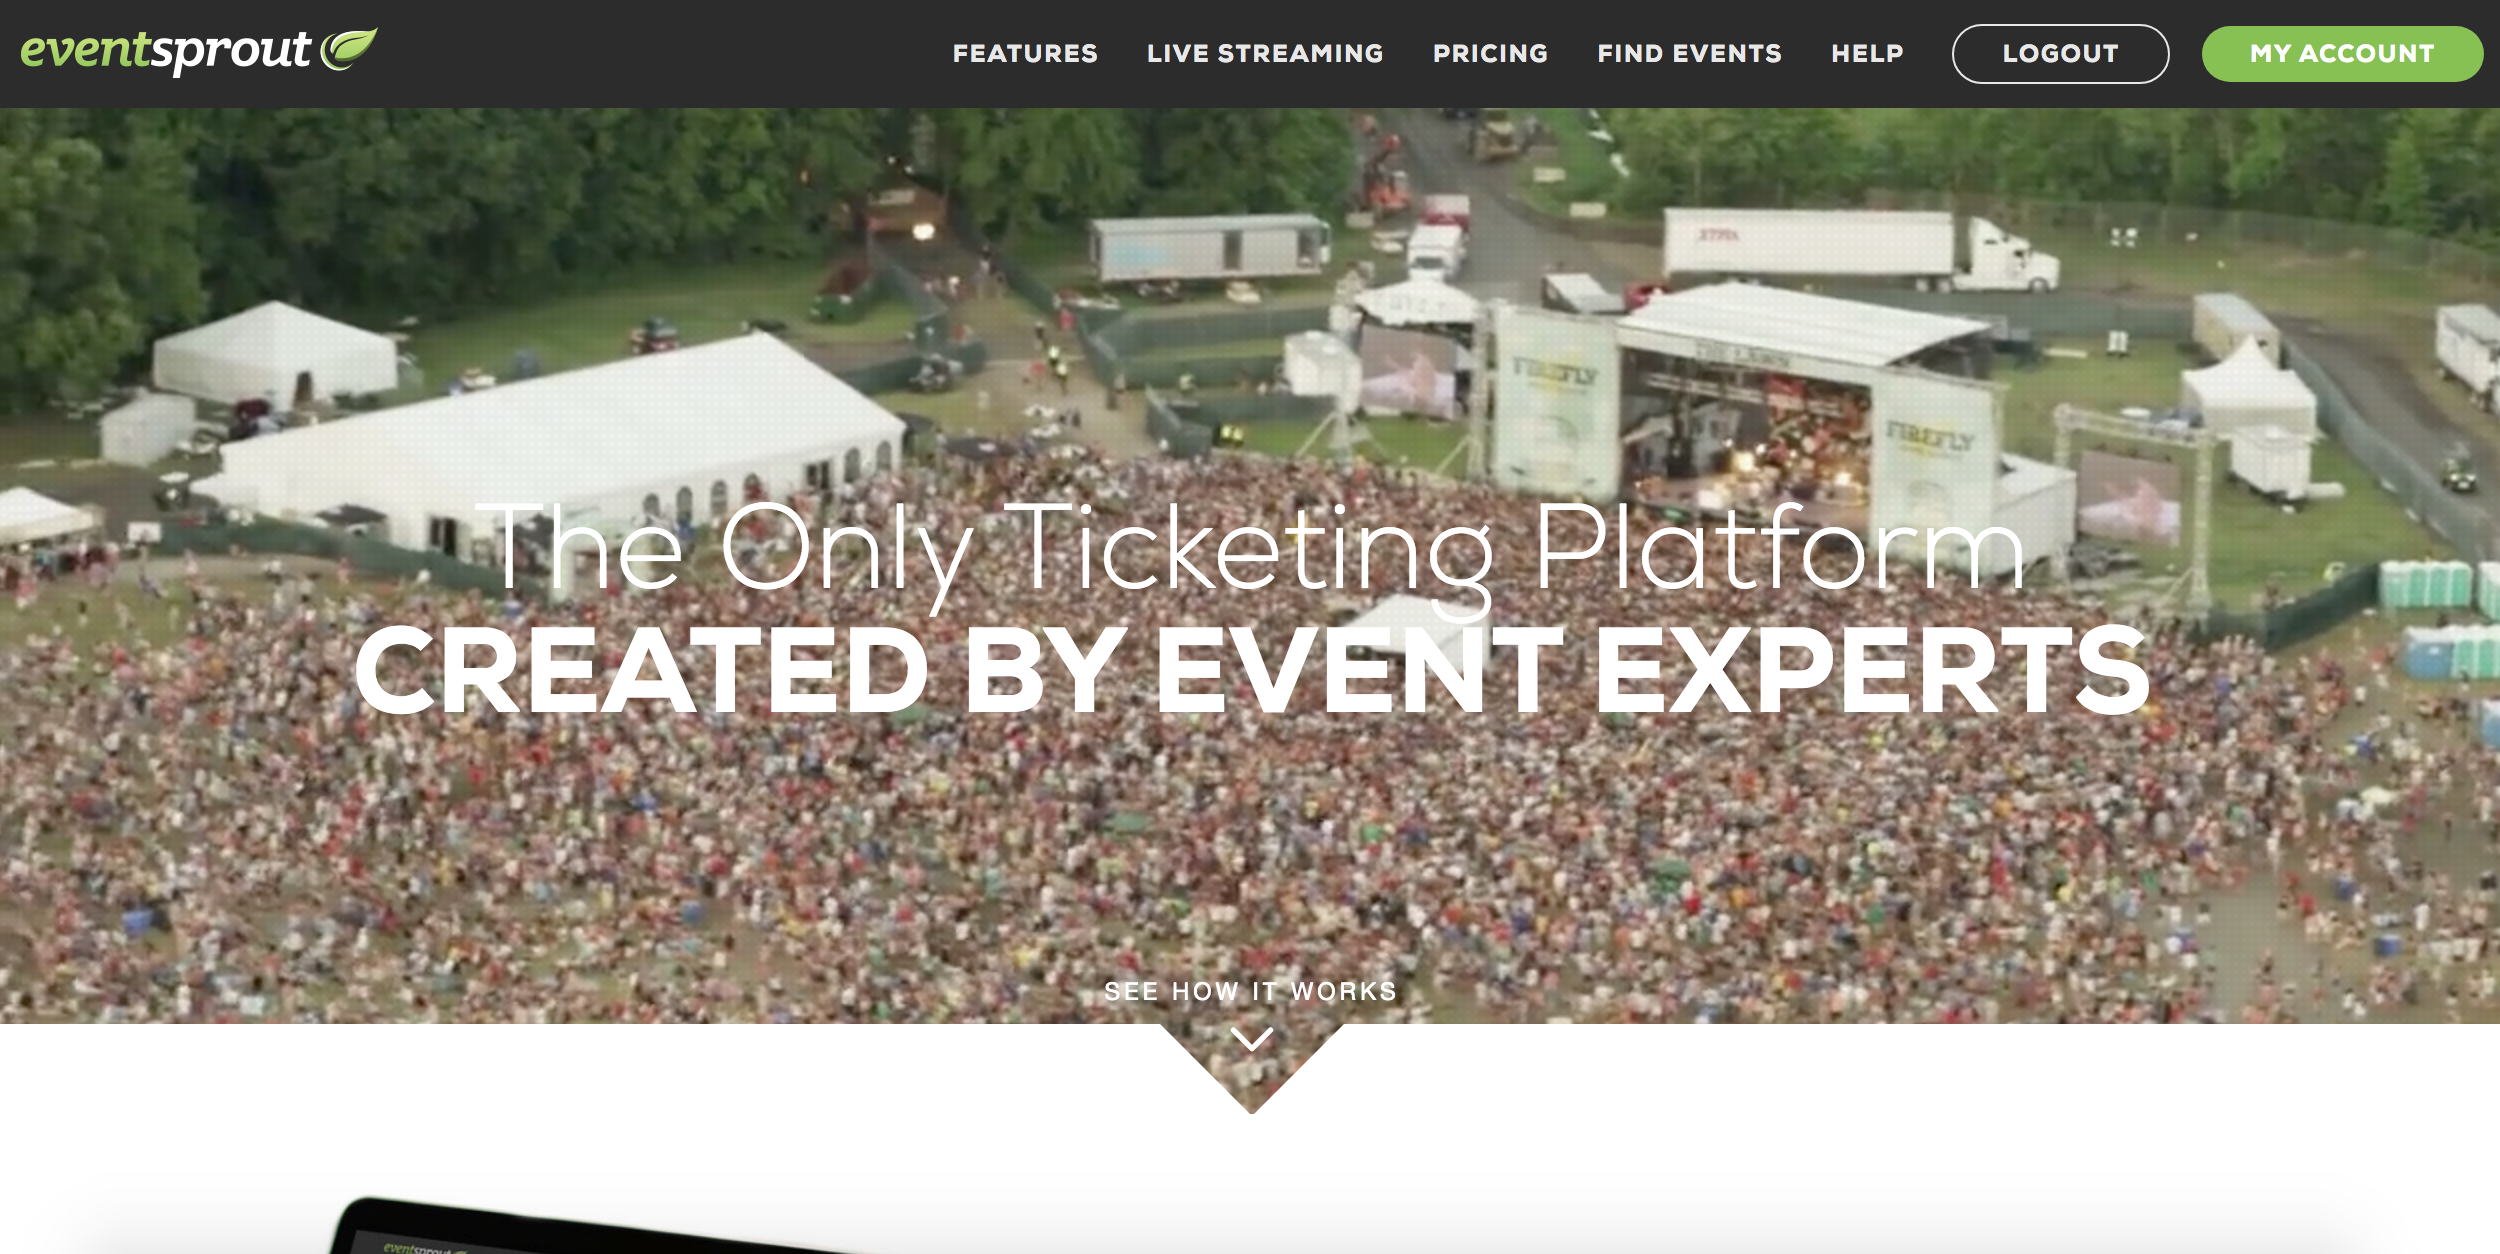 EventSprout Event Management Platform - Top Eventbrite Alternative